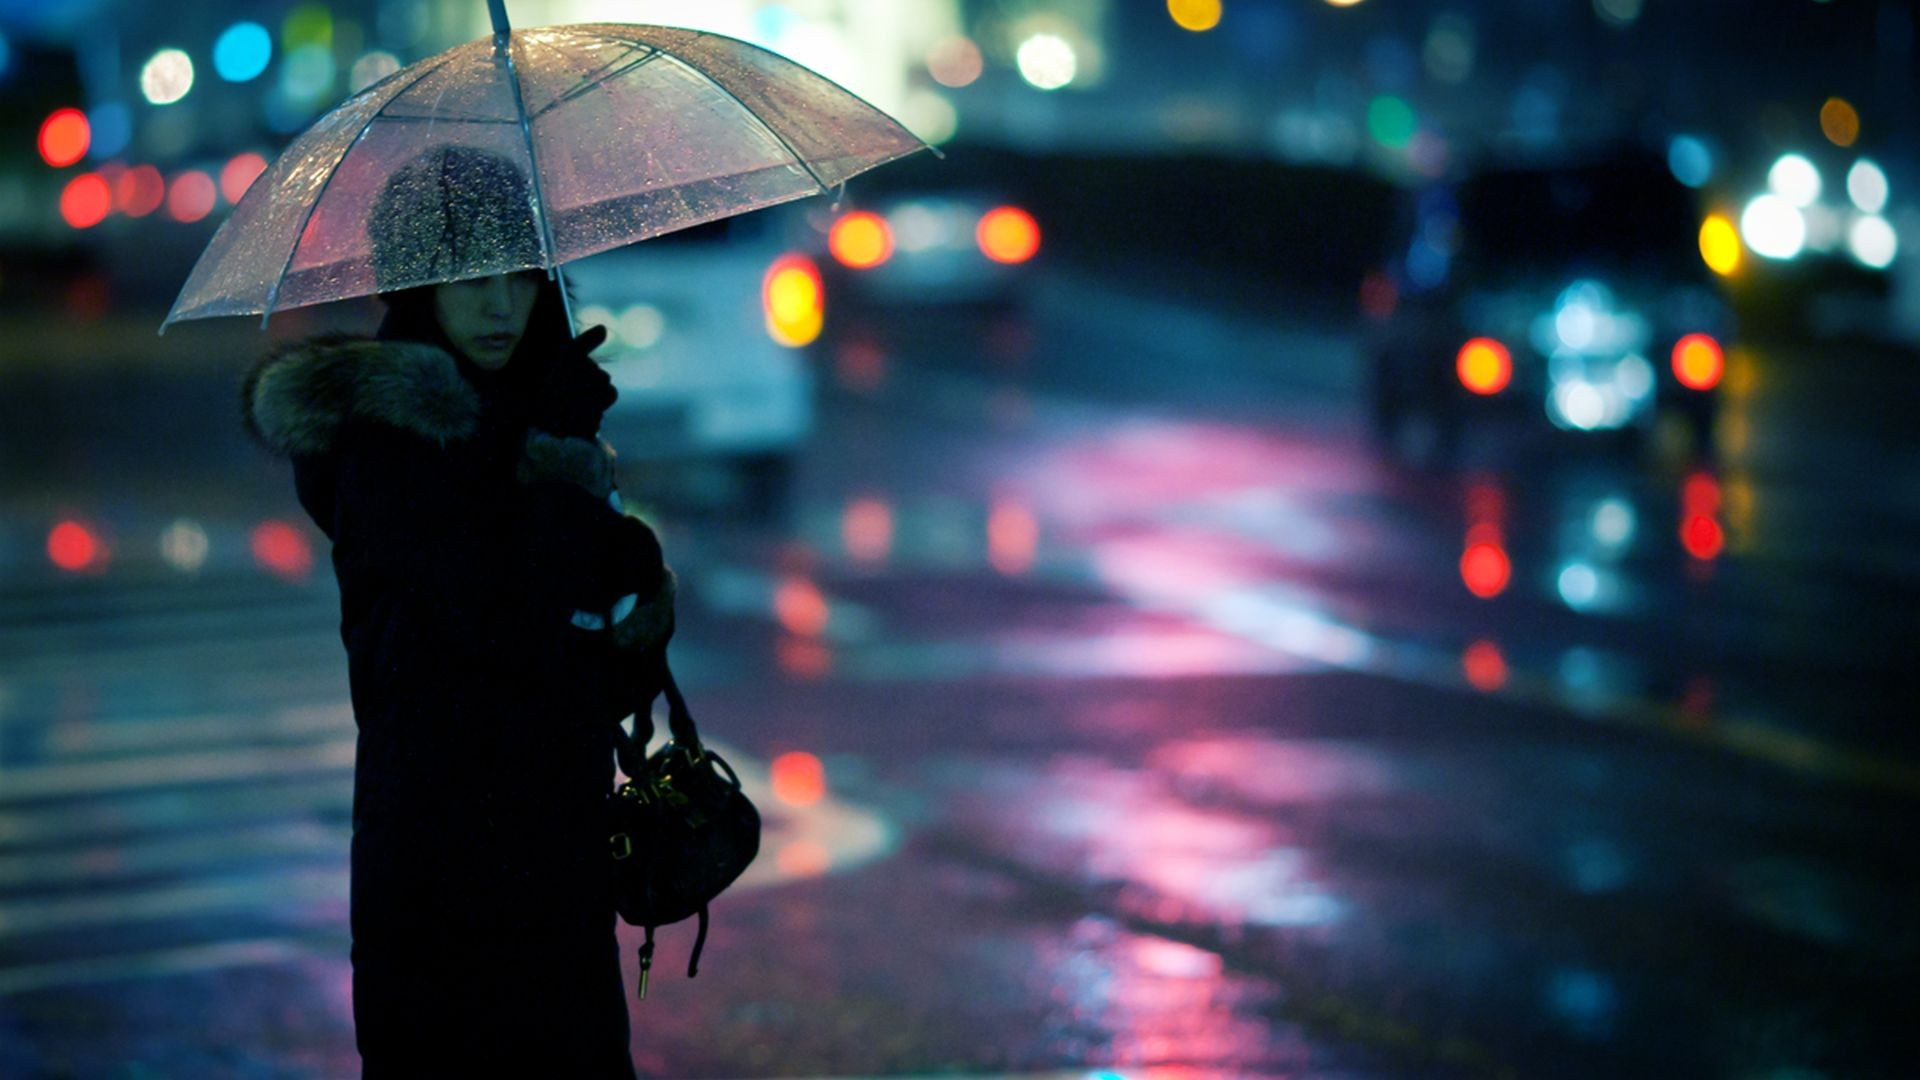 sad rainy night - HD 1600×900